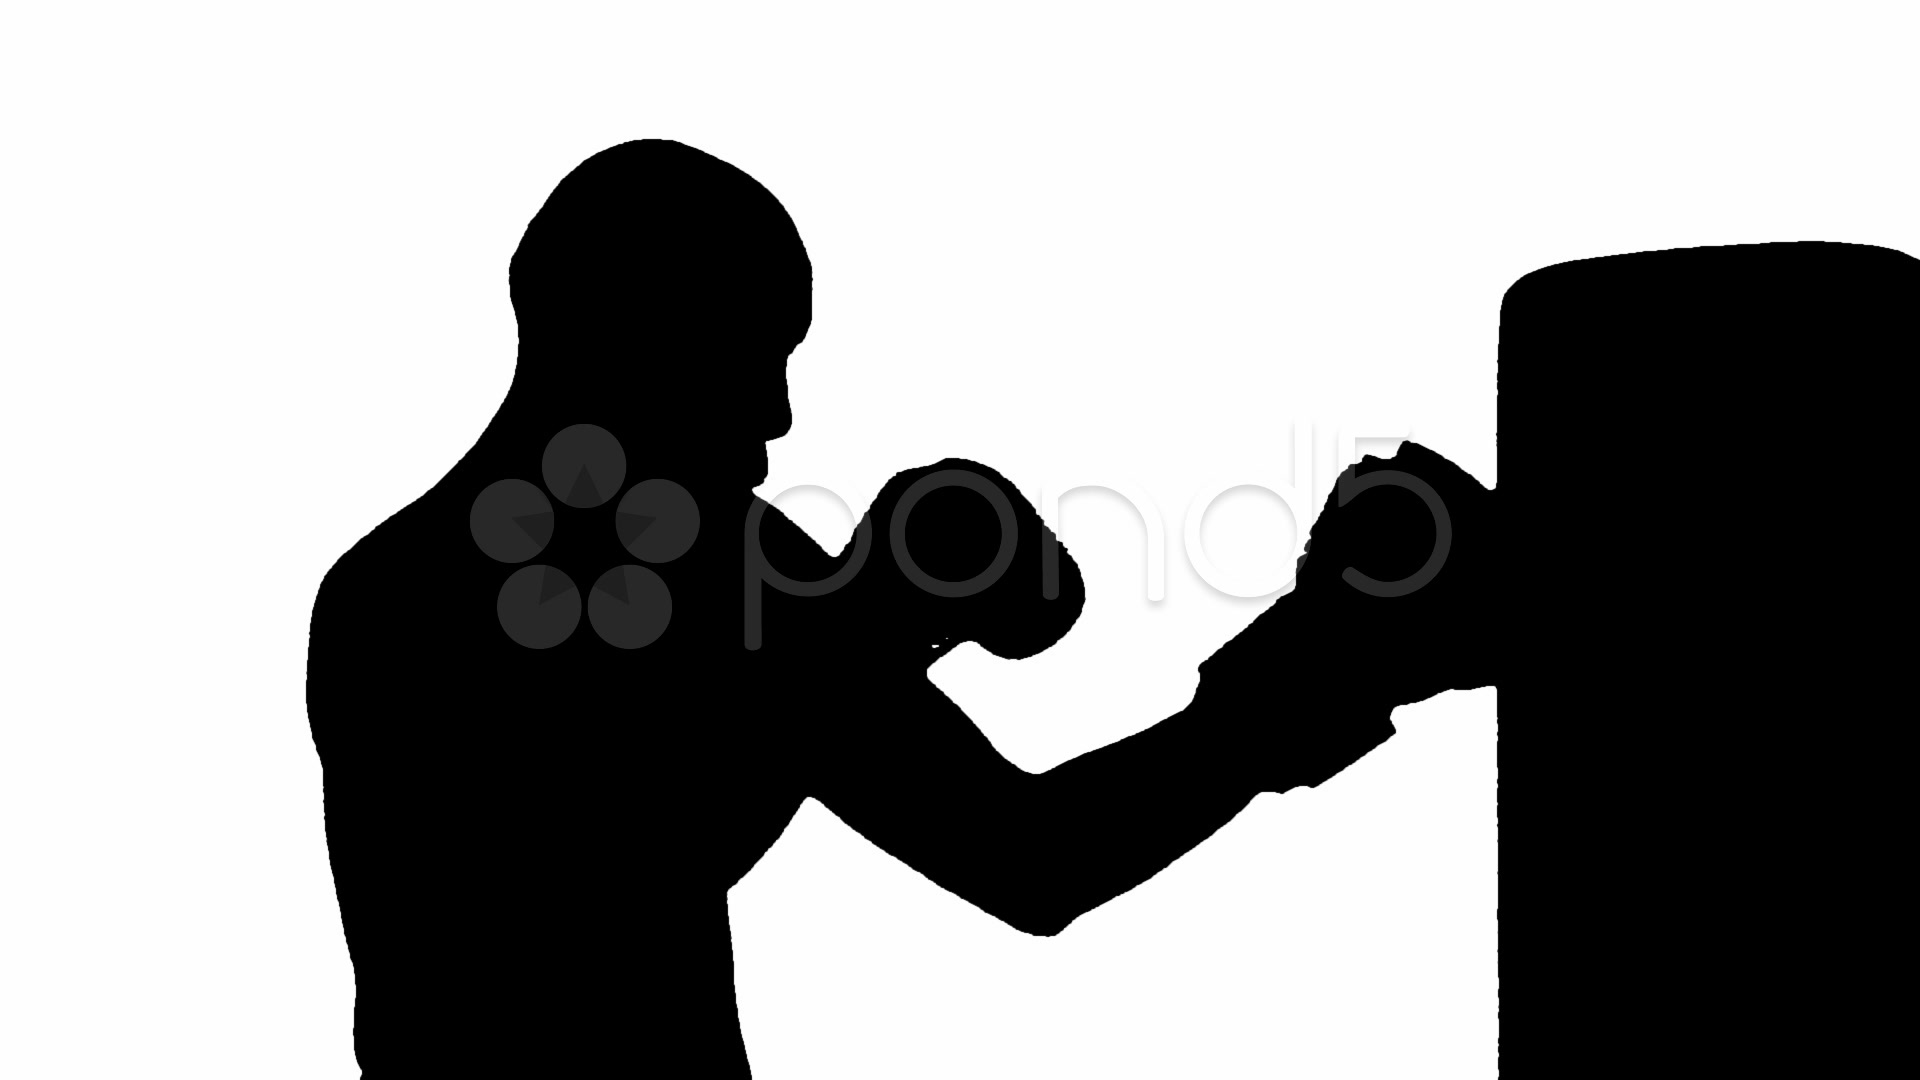 1920x1080 Boxer Working The Bag Silhouette Against White Background ~ Video